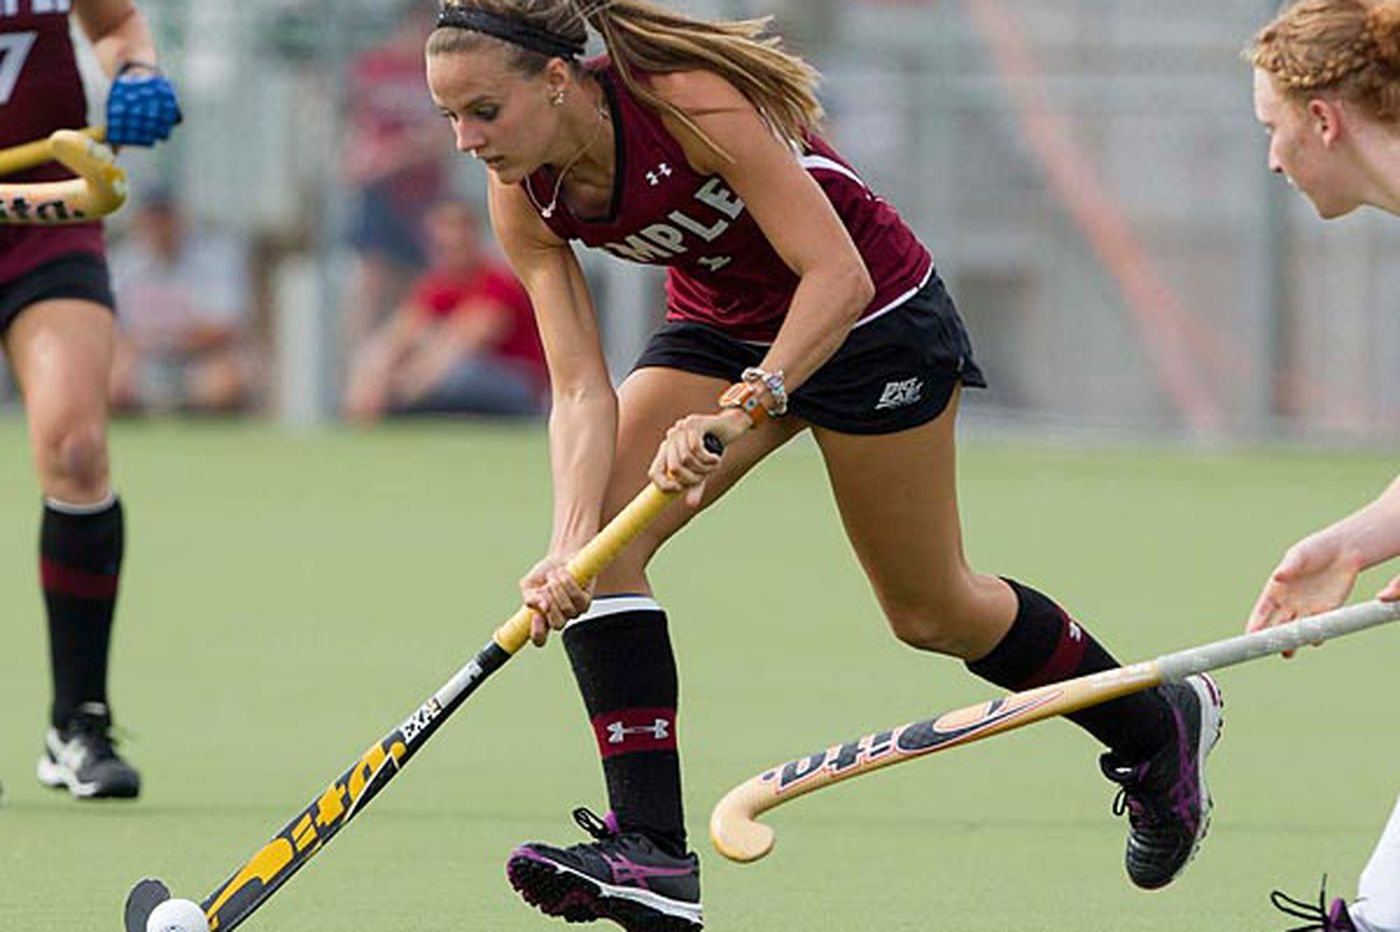 Temple's Youtz is all-American in field hockey